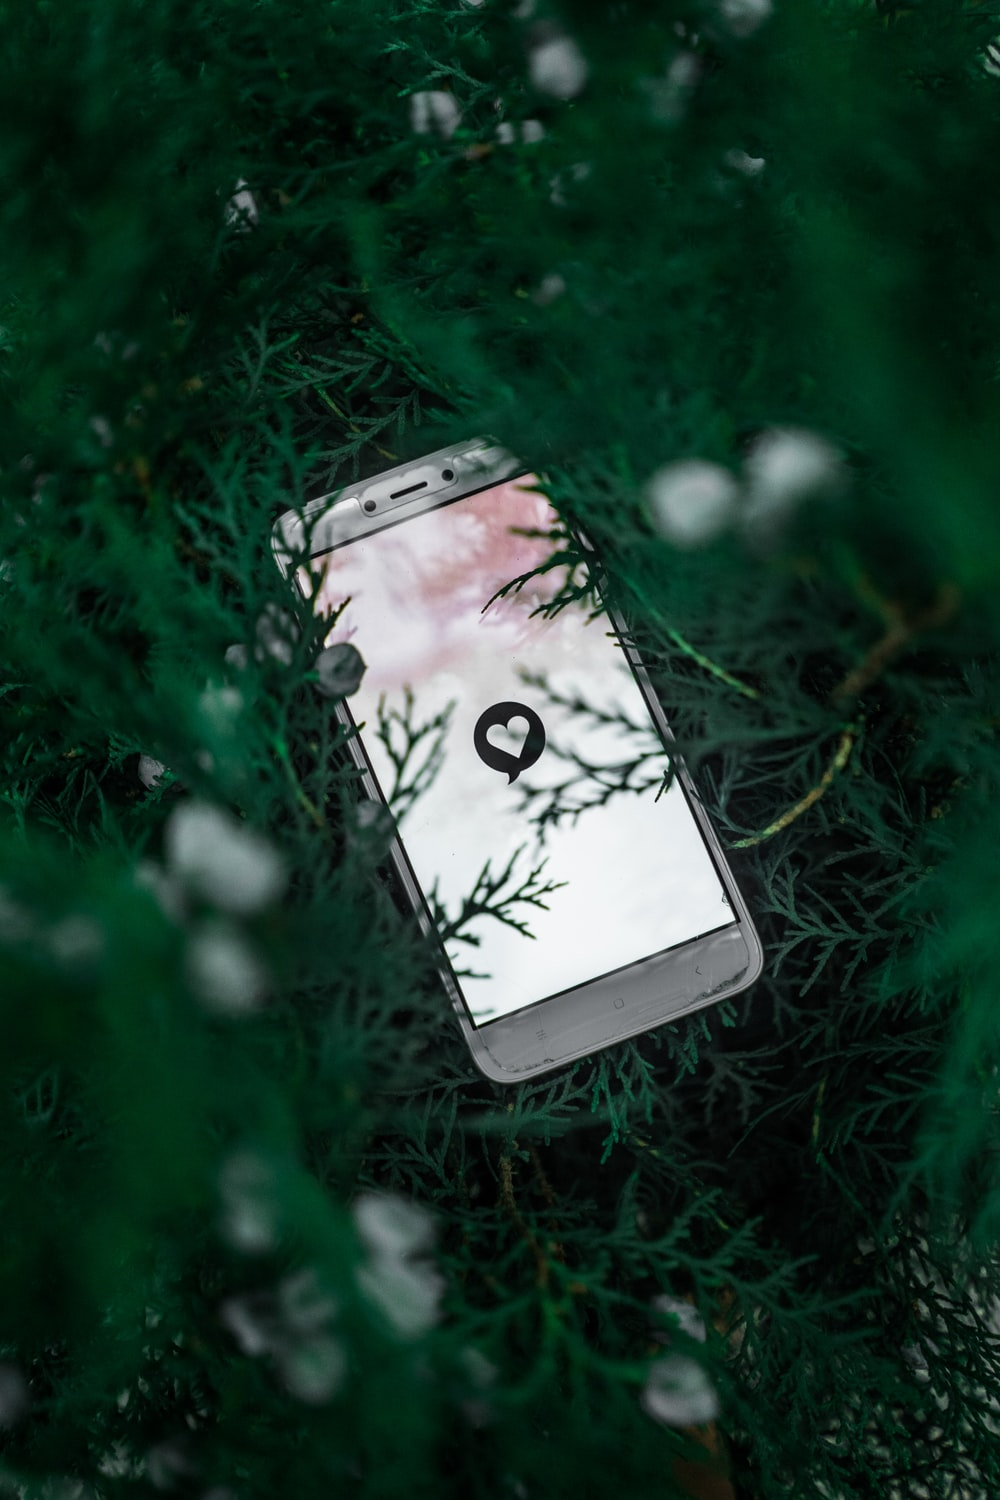 white smartphone on green grass